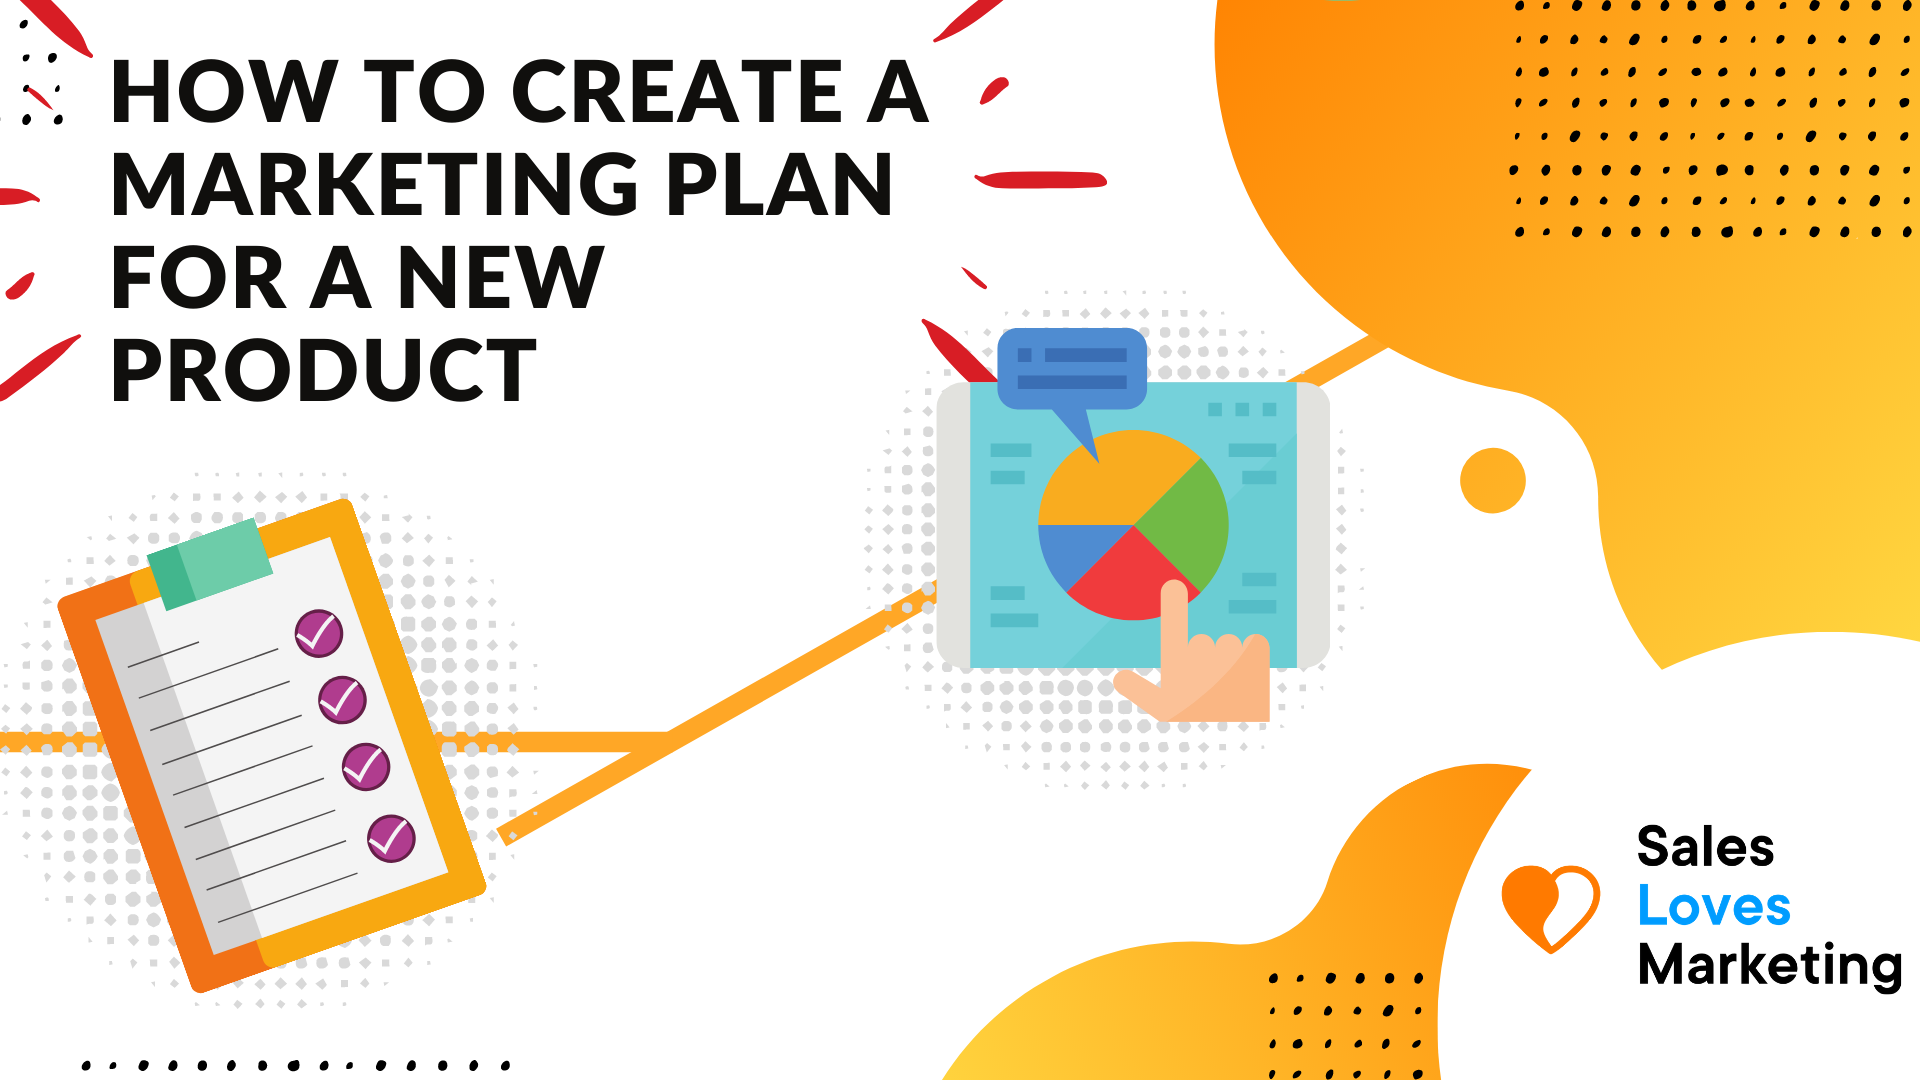 Step 1. How to Create a Marketing Plan for a New Product: Step by Step Process